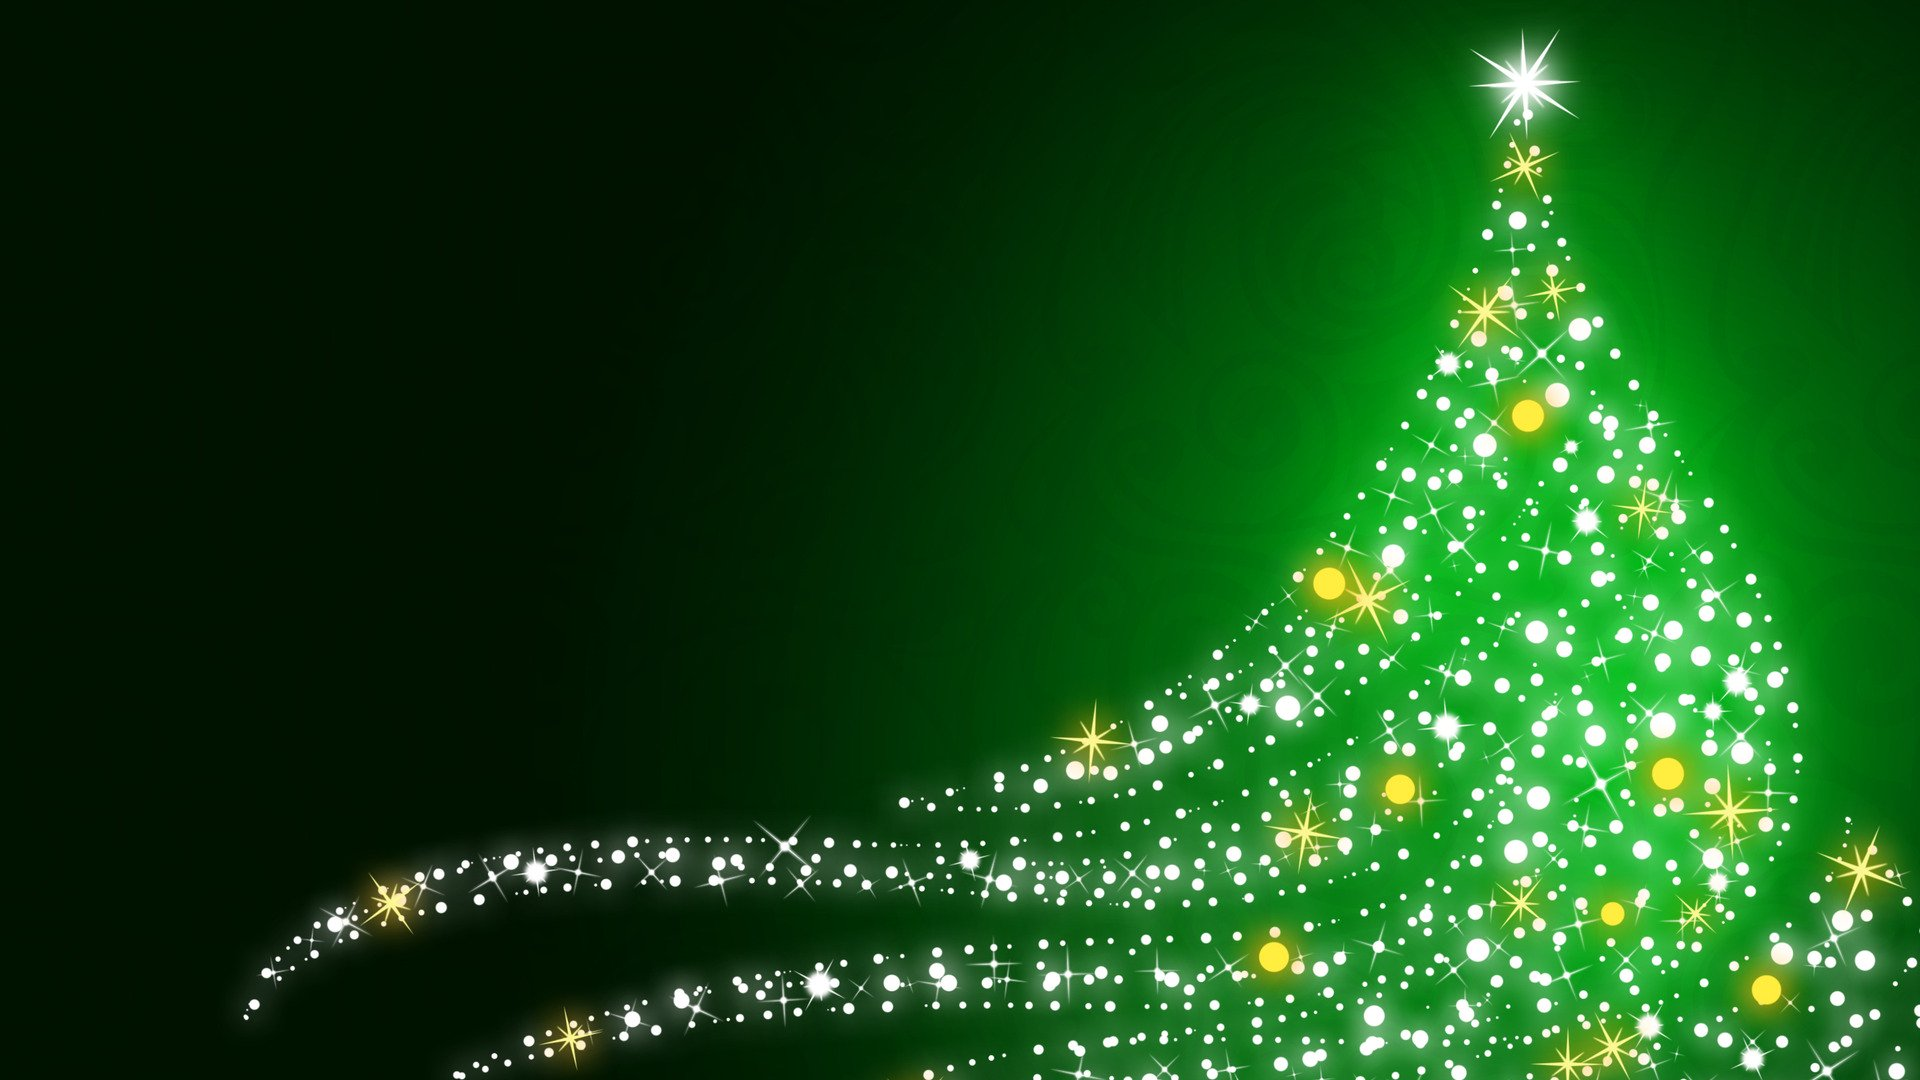 48 HD Christmas Wallpapers For Download 1920x1080